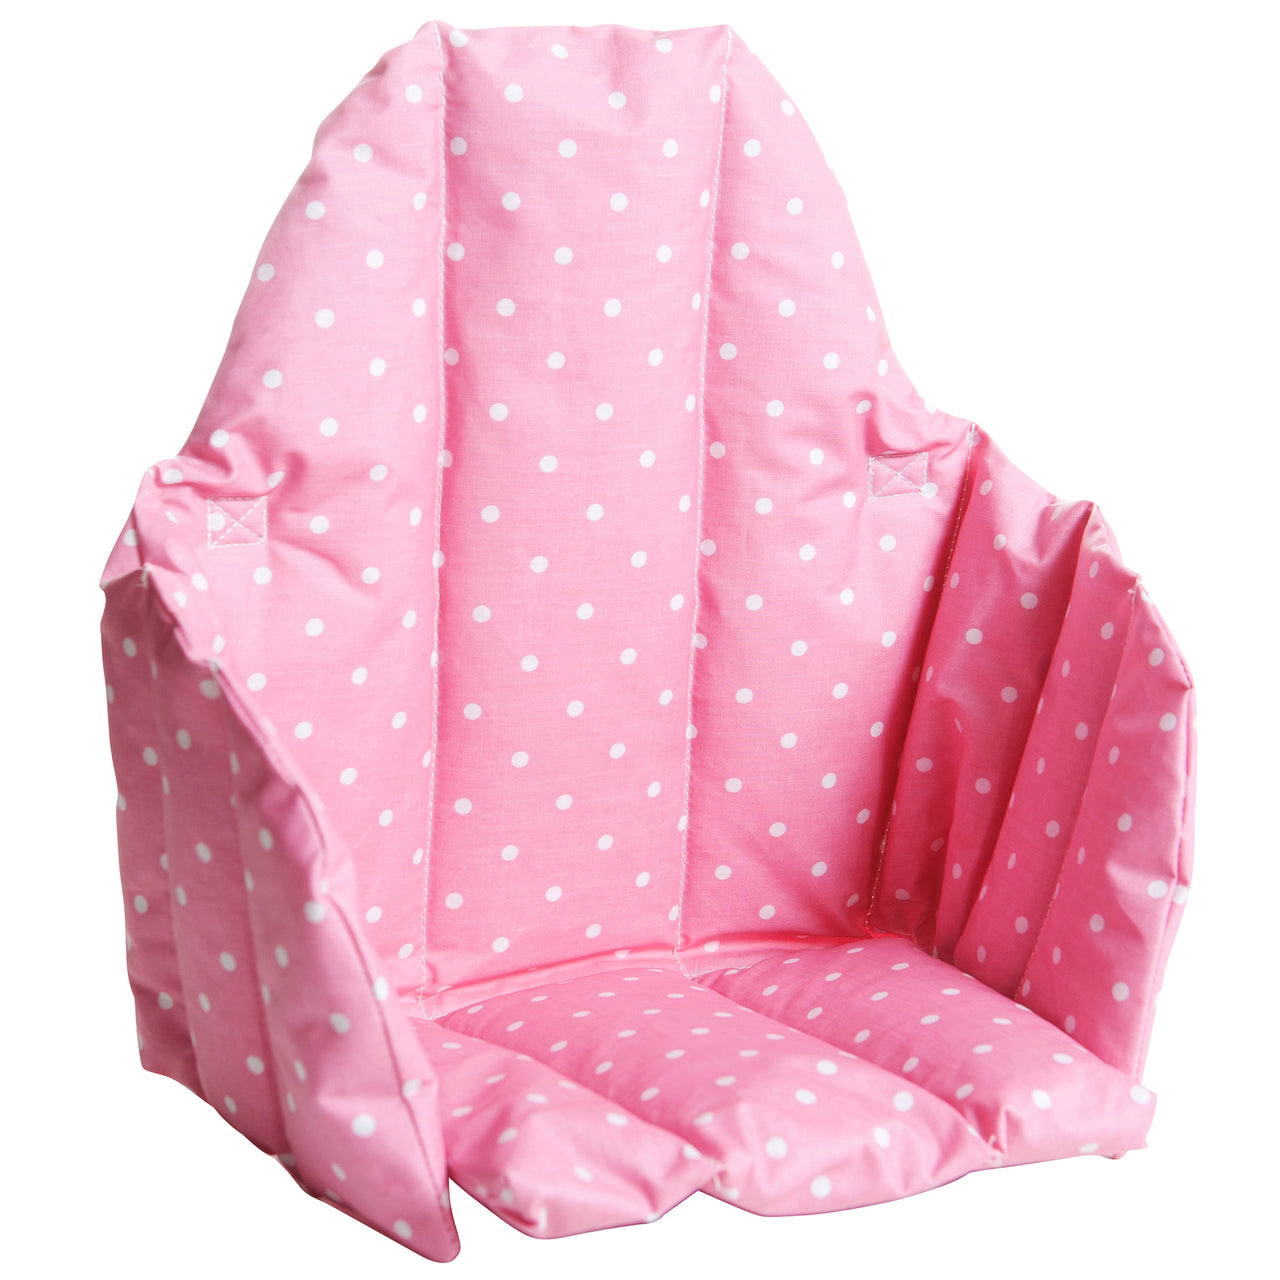 Prickig Child Seat Cushion for High Chair Pink - Northlight Homestore